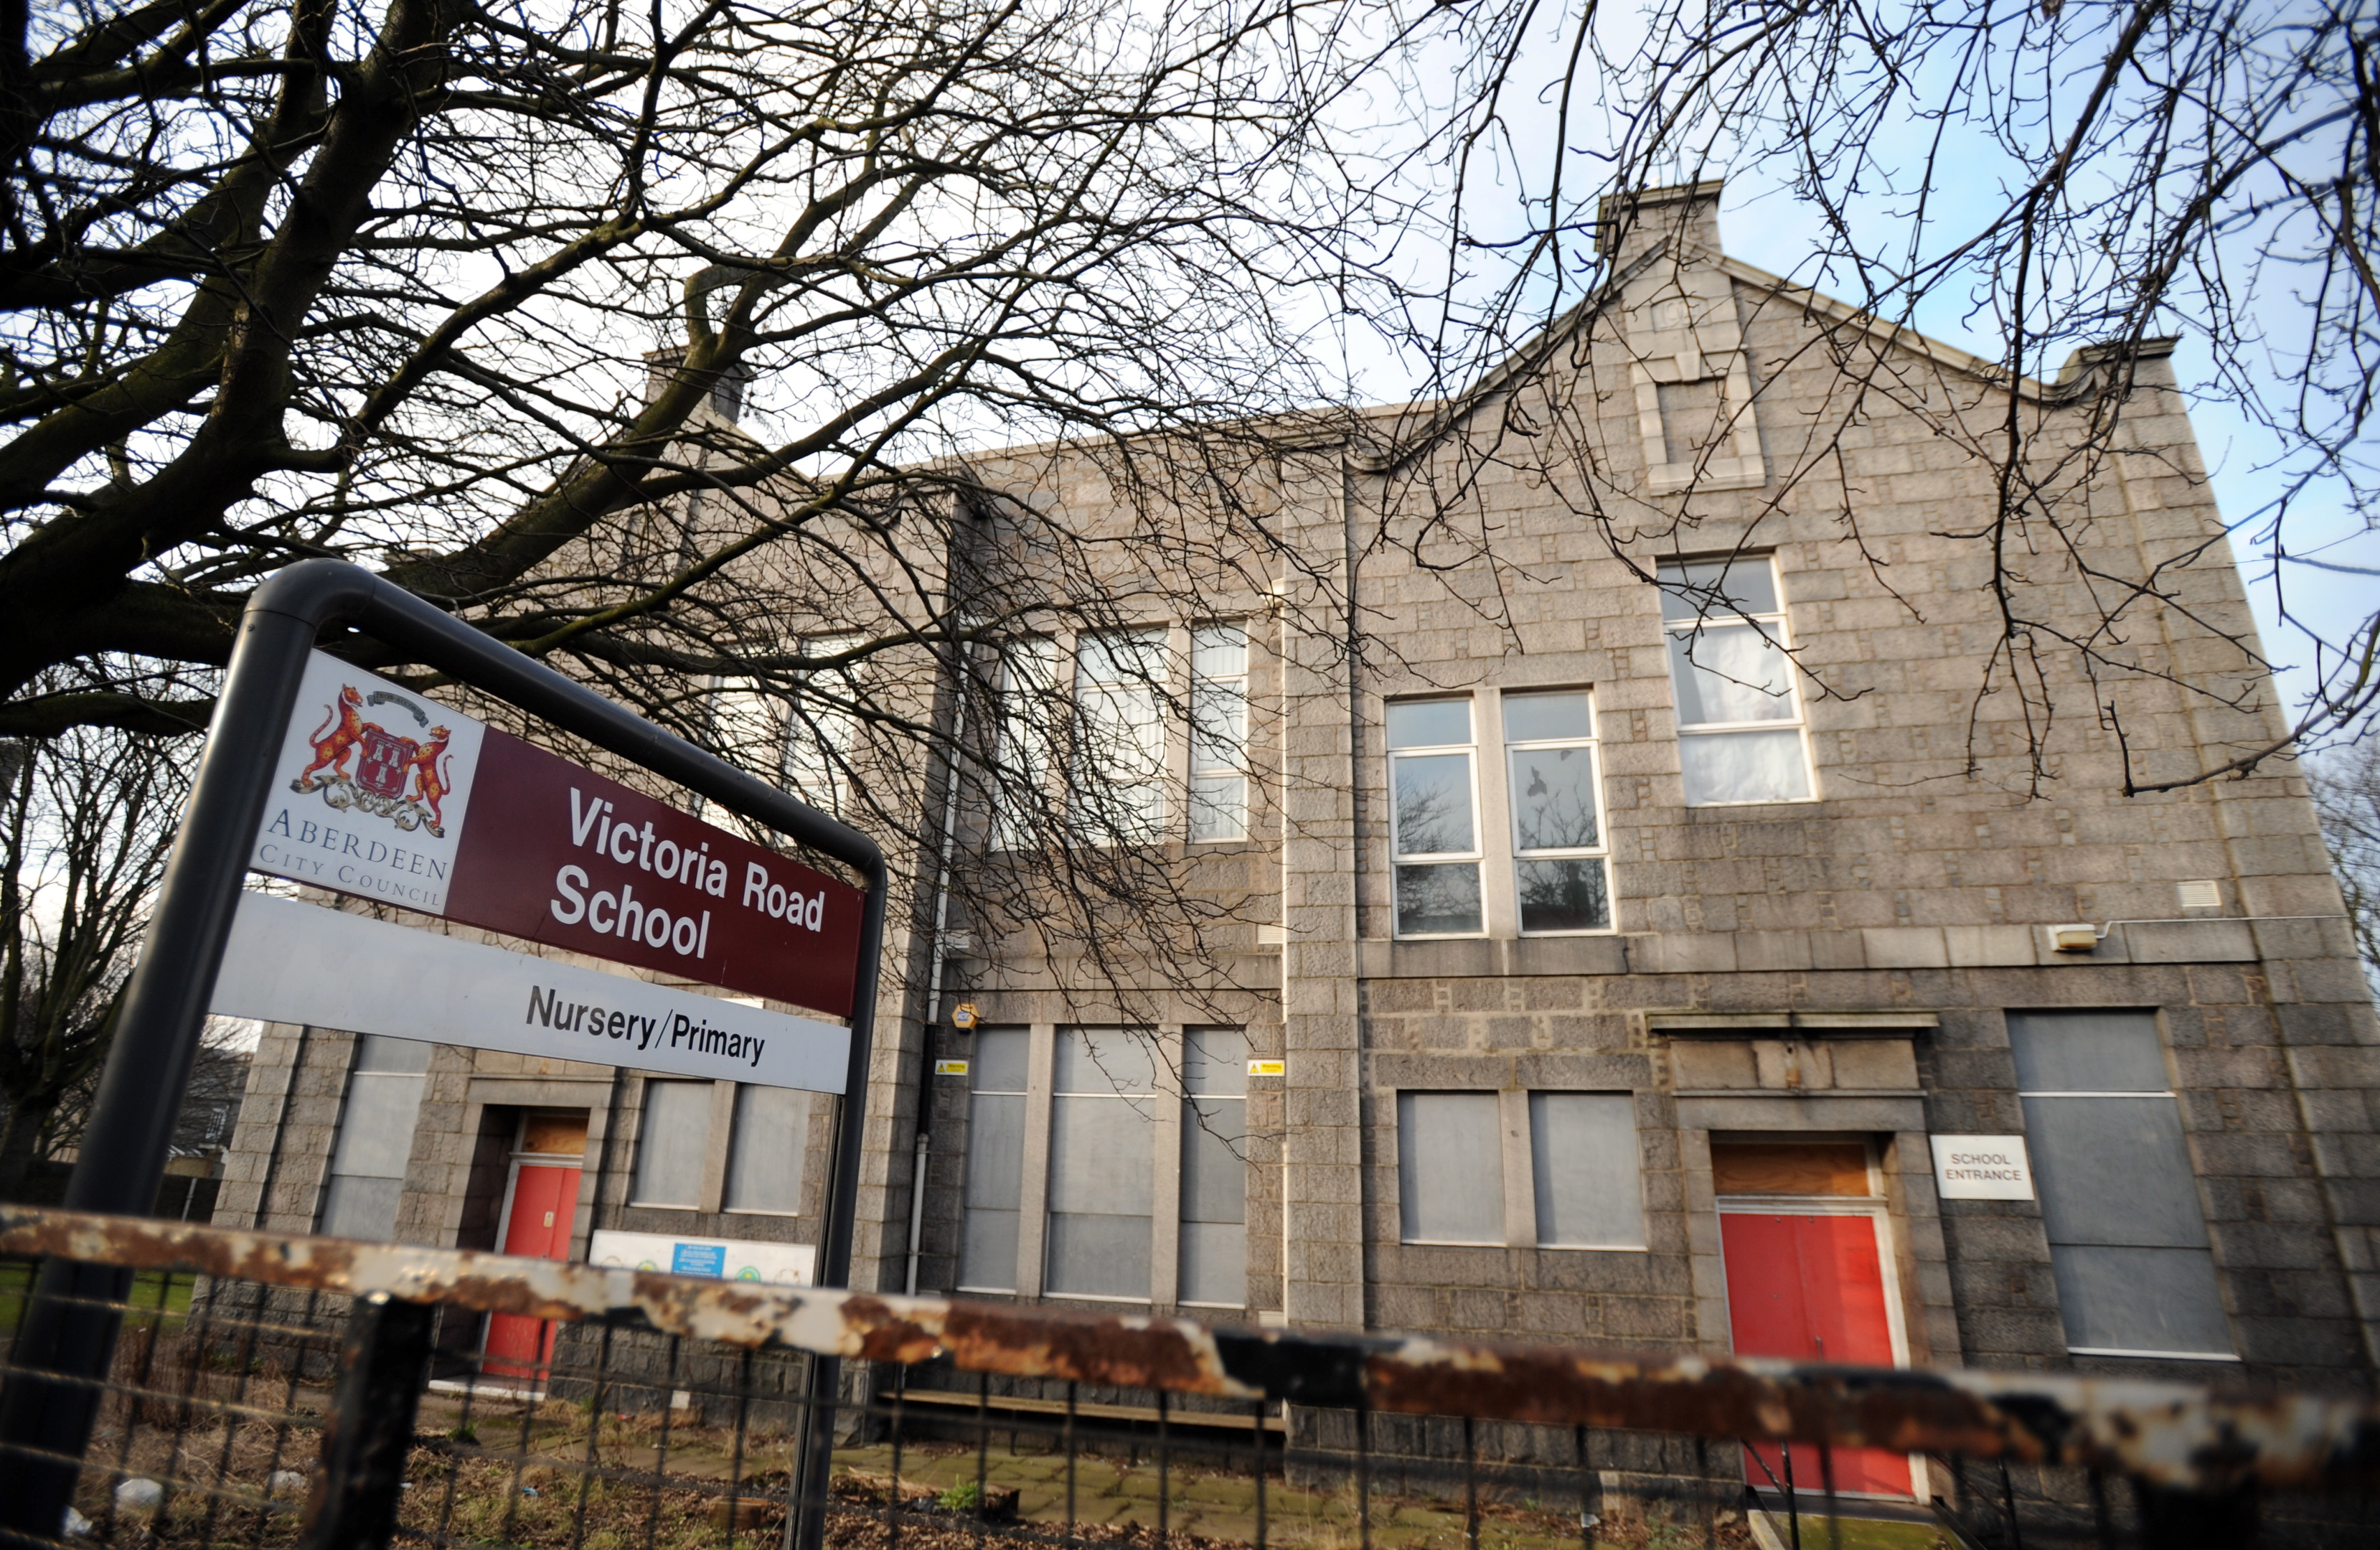 Plans have been lodged to demolish Victoria Road School and replace it with homes.